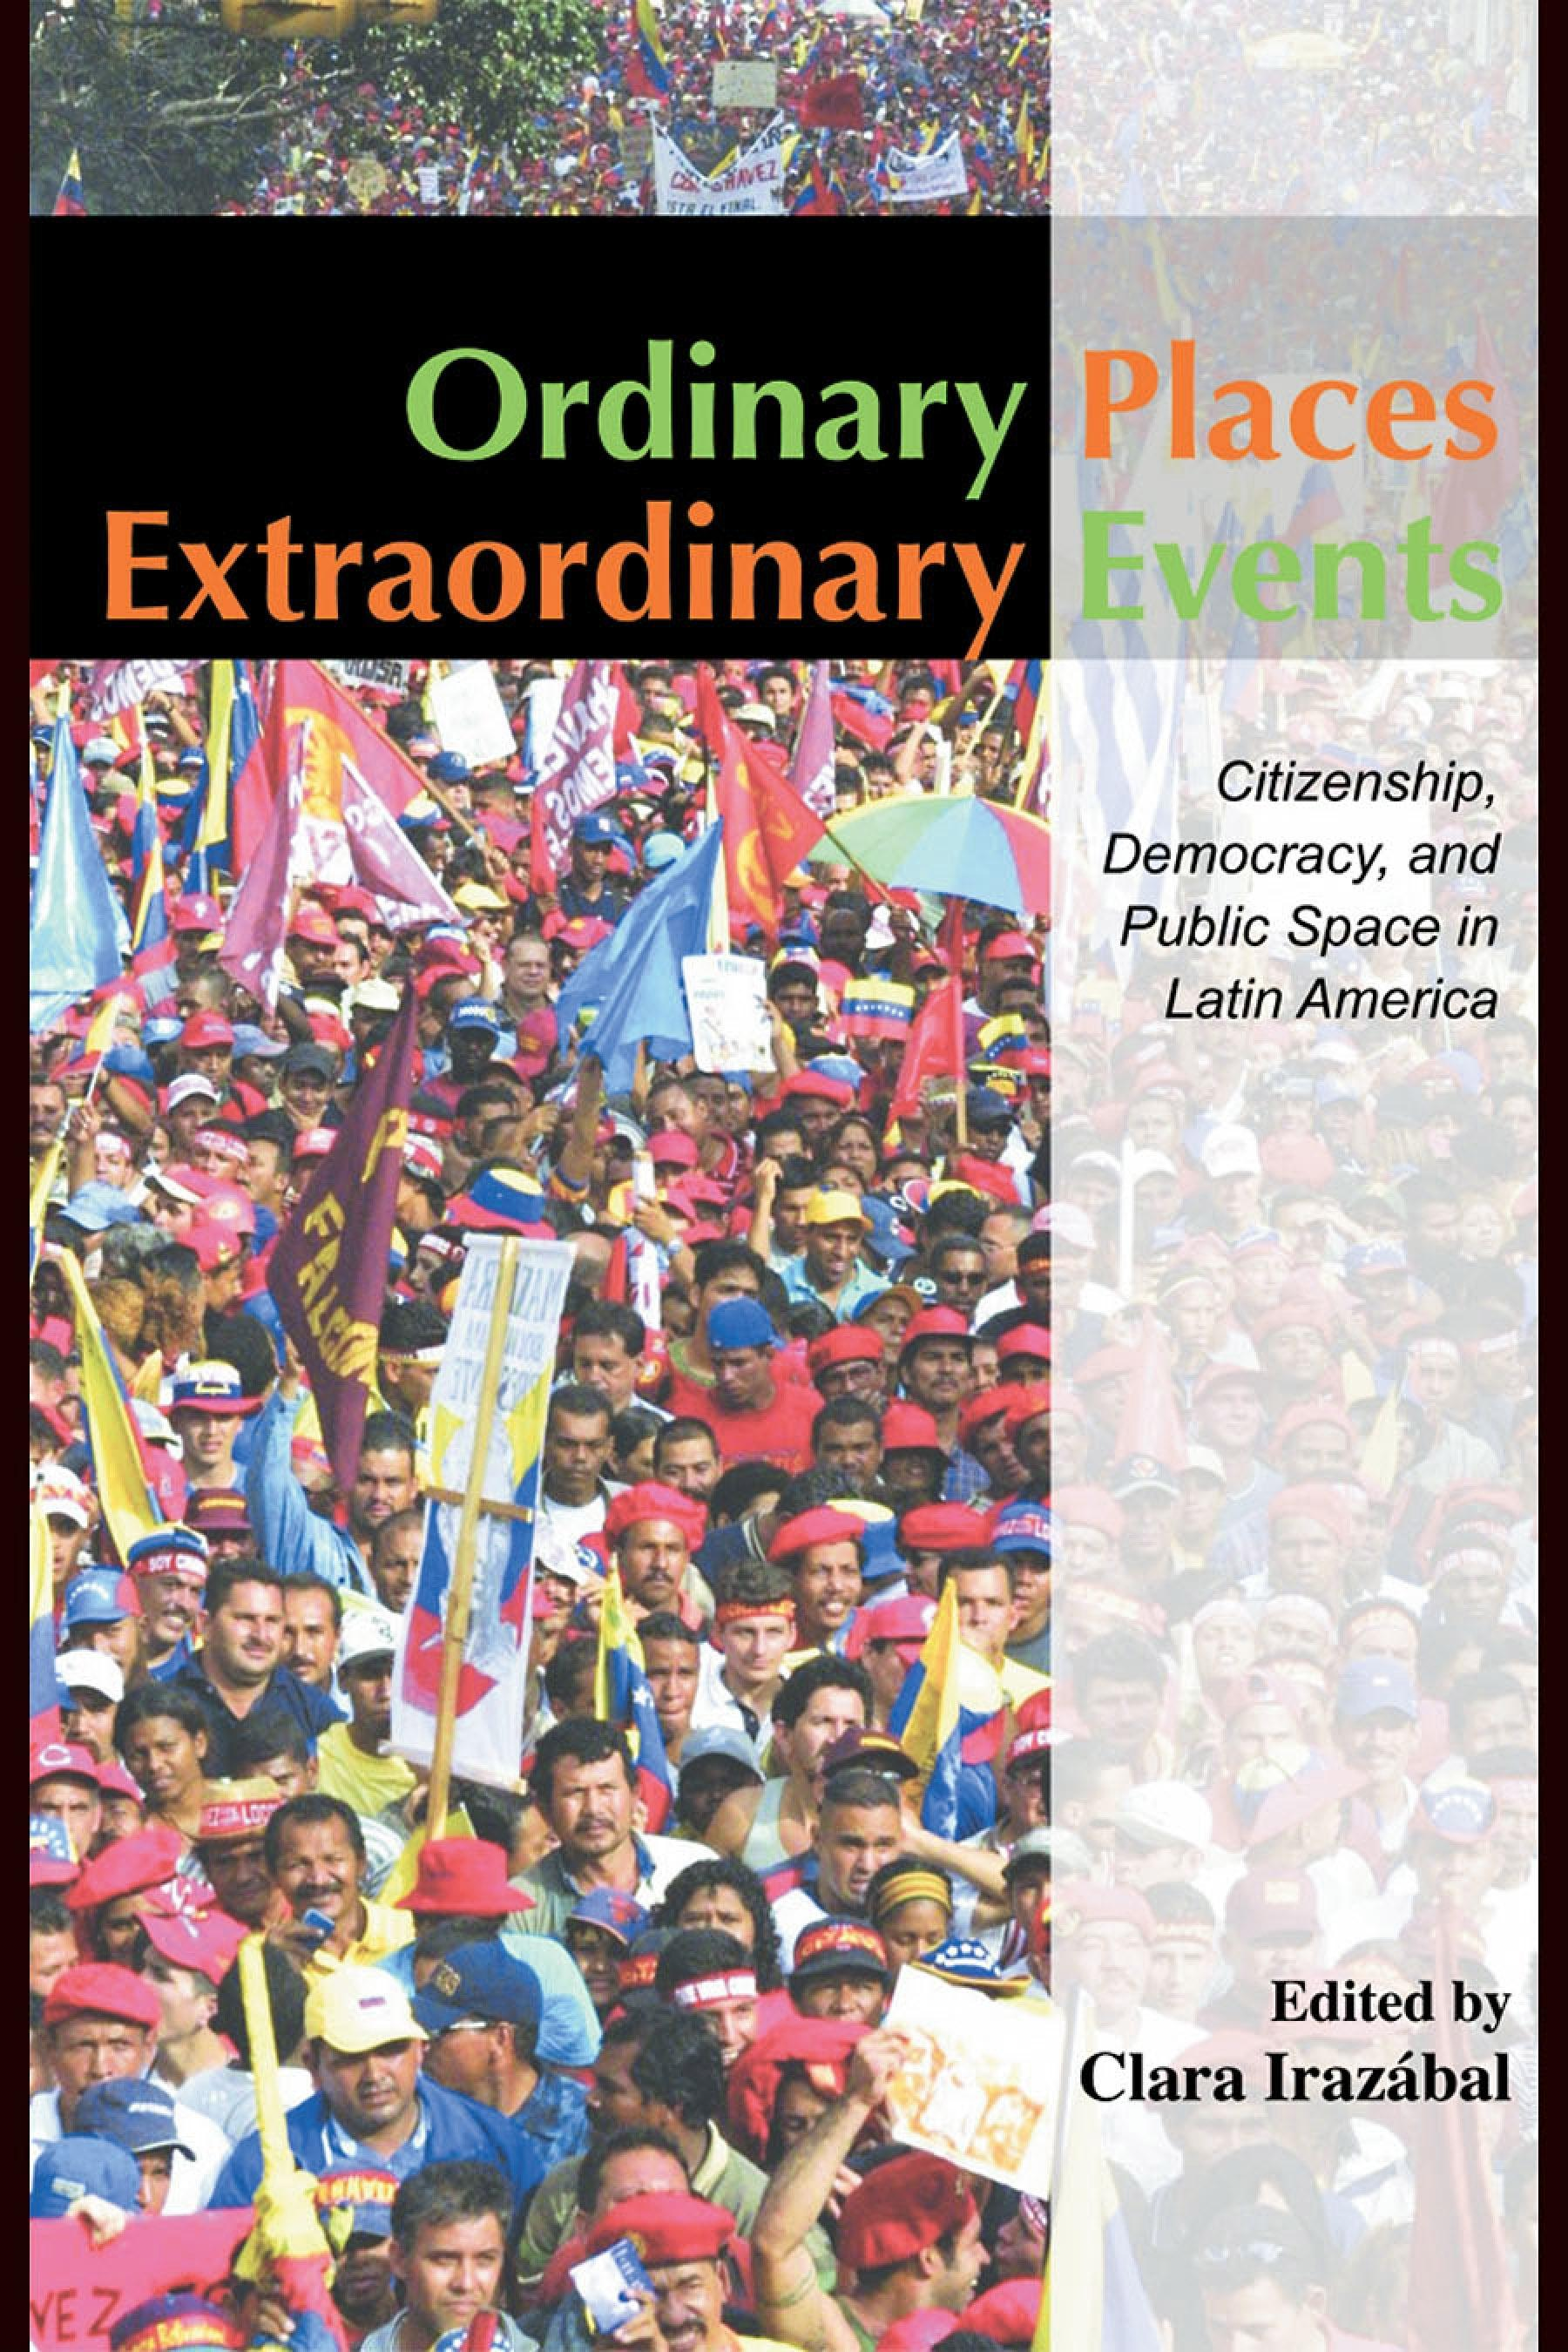 Ordinary Places/Extraordinary Events: Citizenship, Democracy and Public Space in Latin America